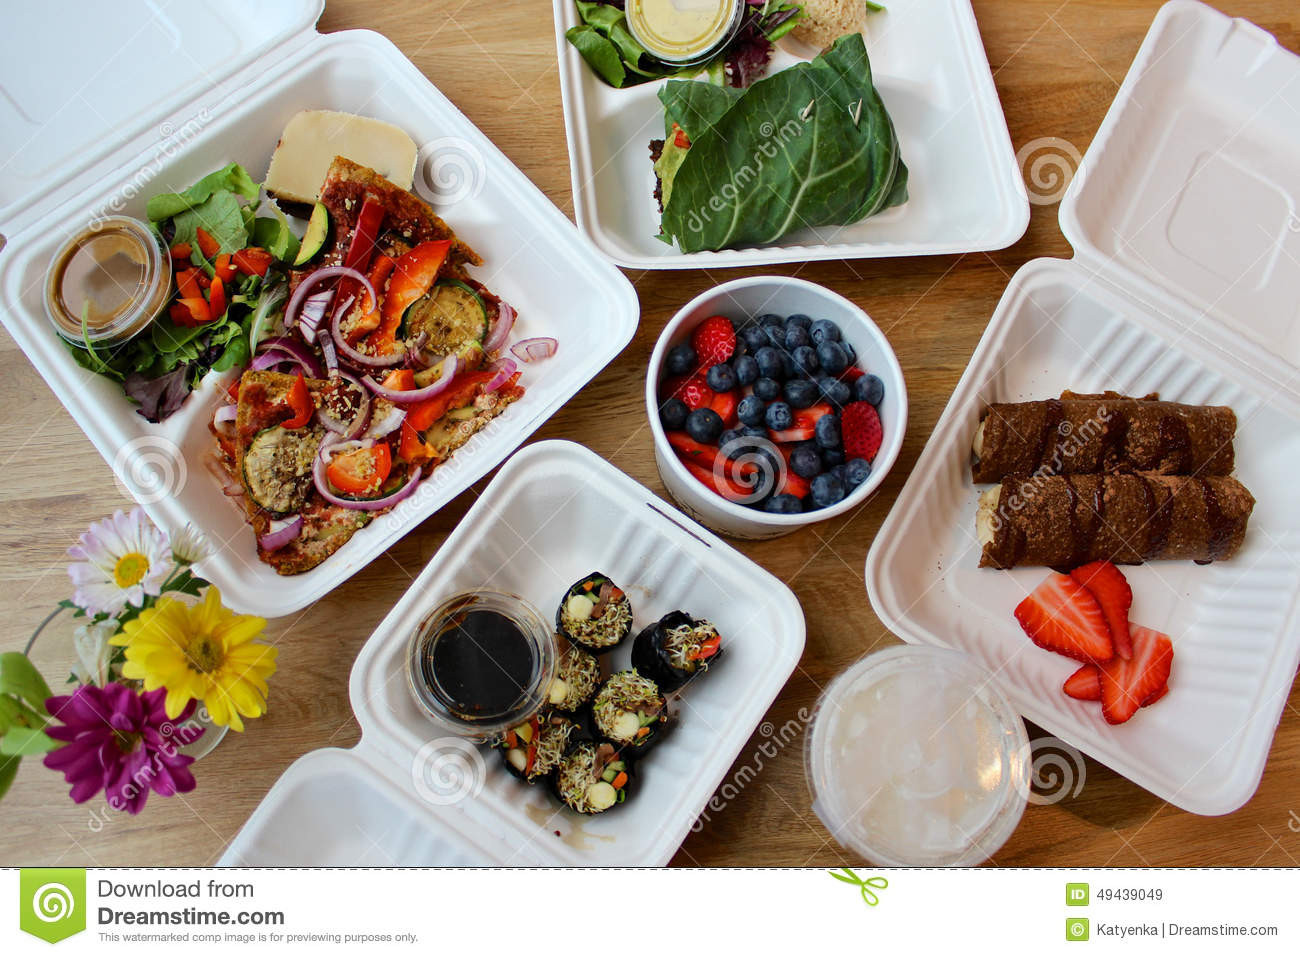 Healthy Snacks Delivered  Raw vegan Meal Delivery Service Meals And Snacks For